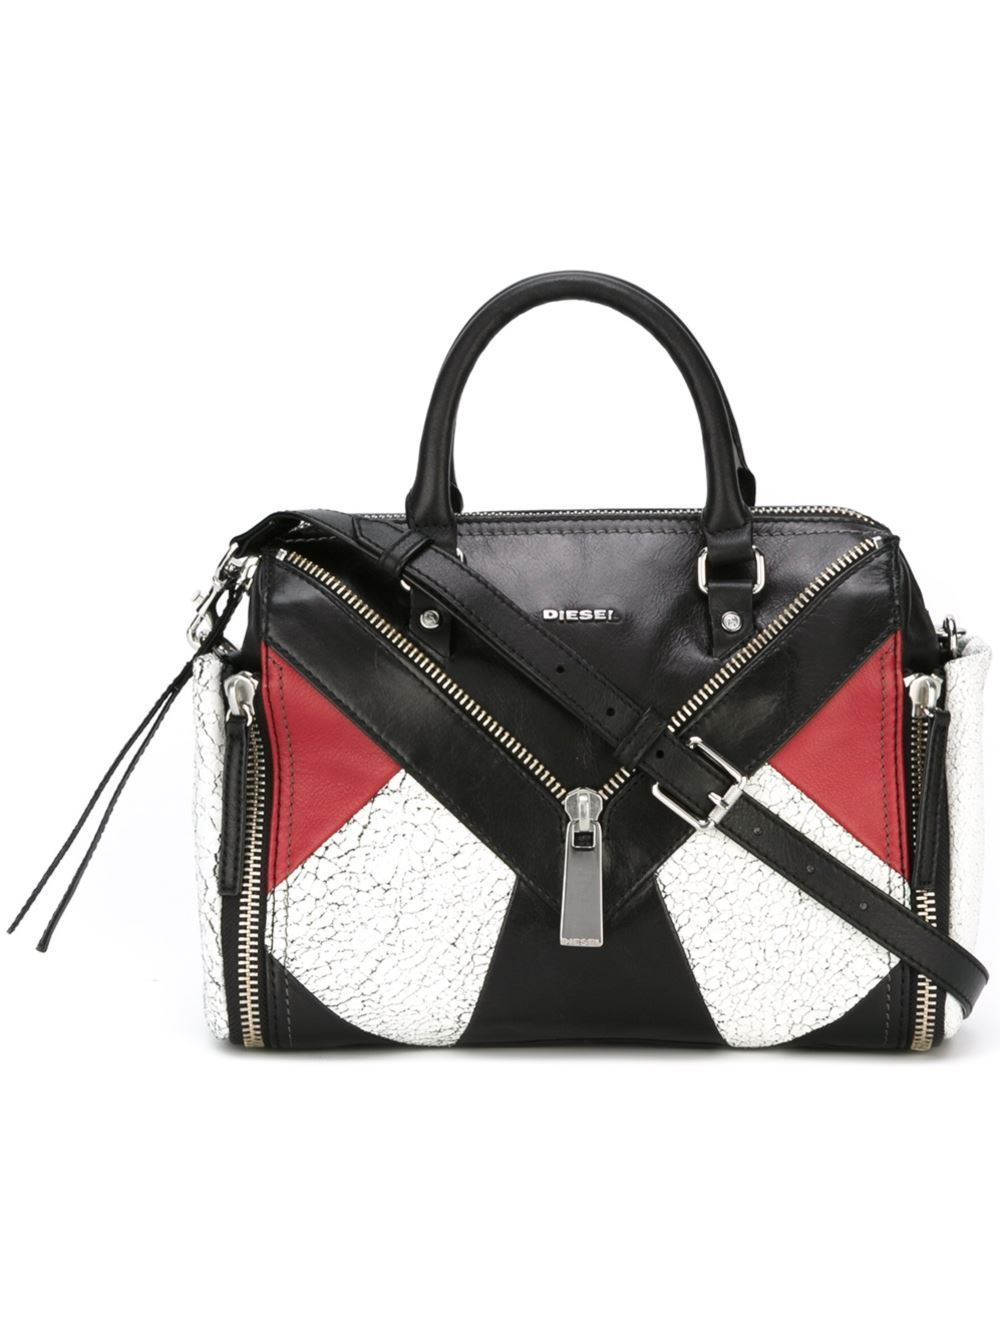 Amazing Diesel Bags For Women  For Life And Style